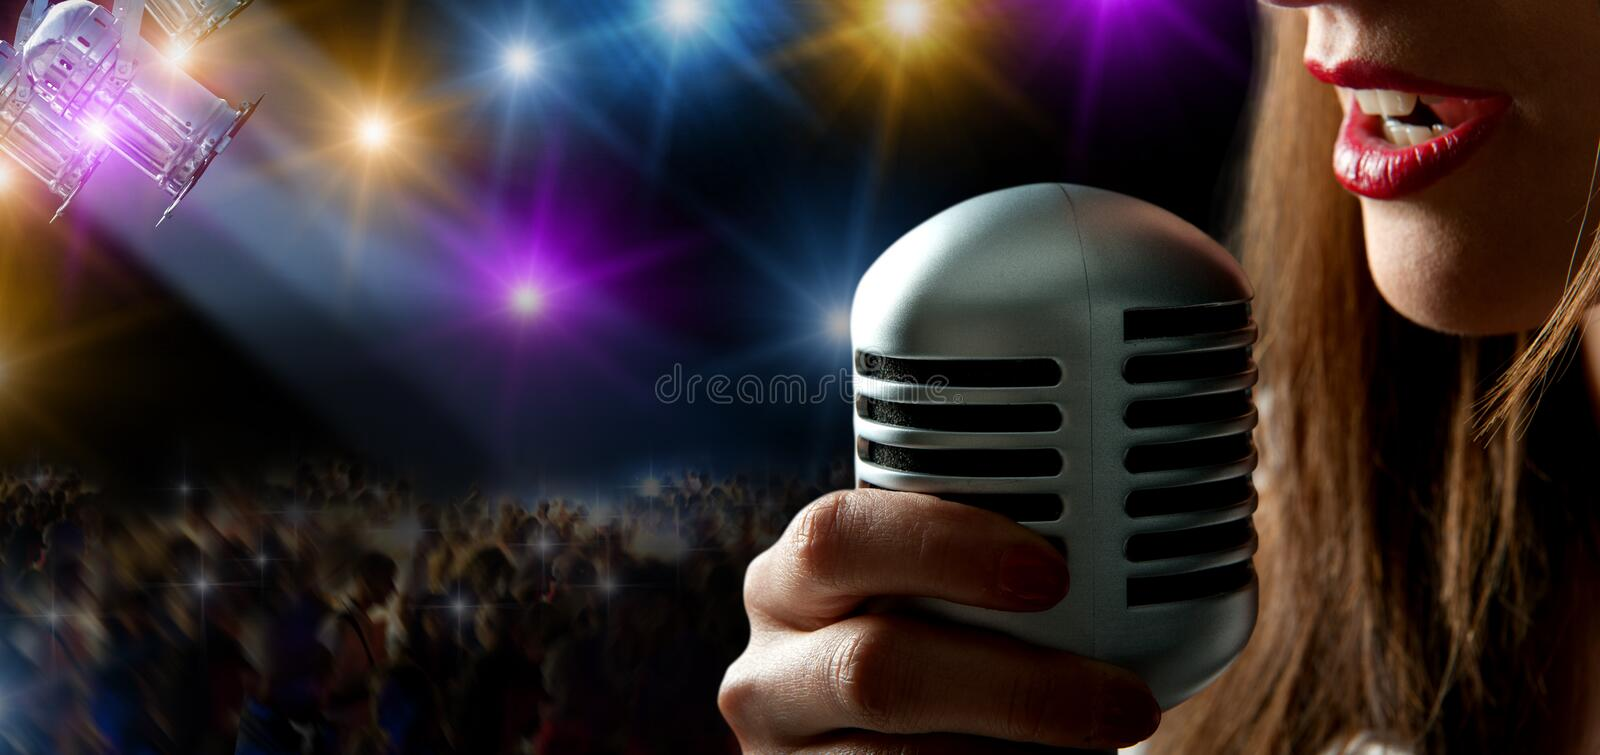 Download Singer and concert stock photo. Image of metallic, people - 24024818